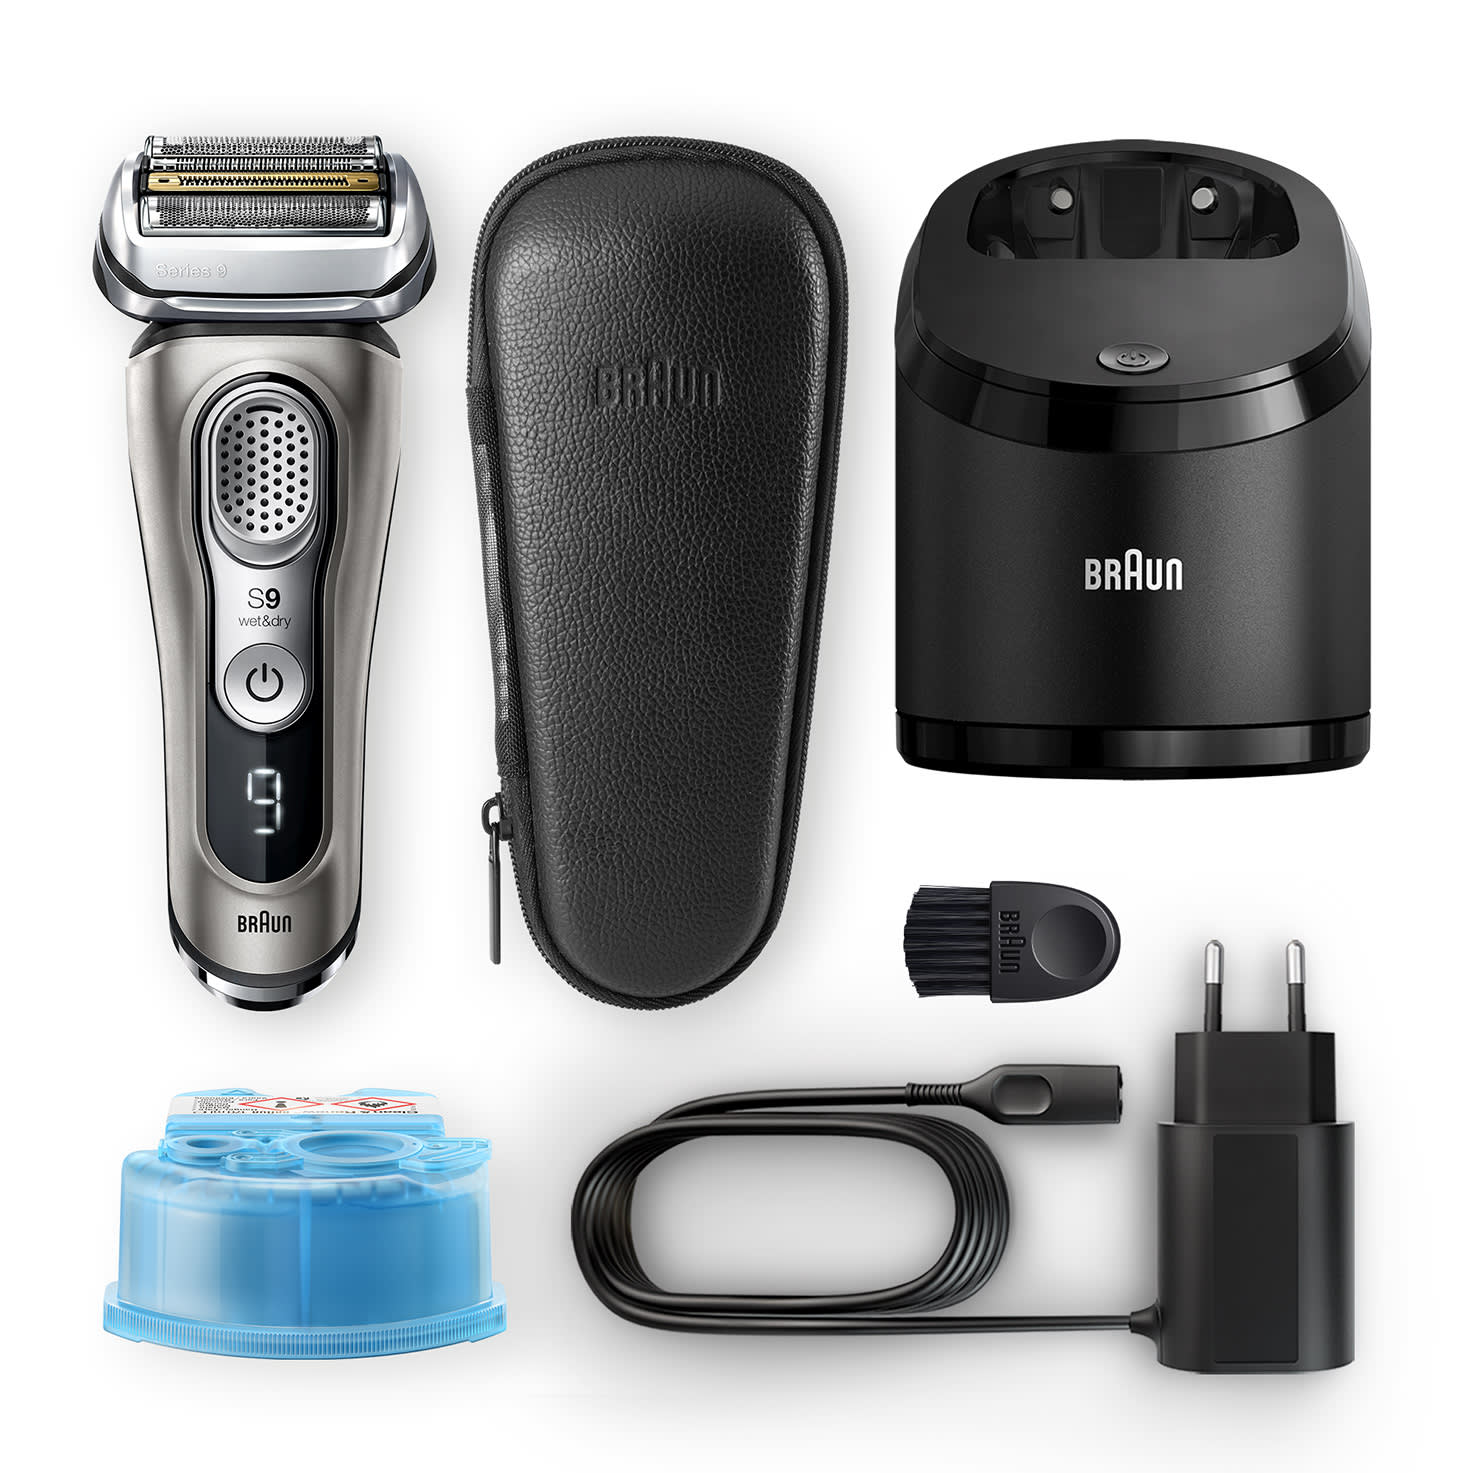 Series 9 9385cc shaver - What´s in the box